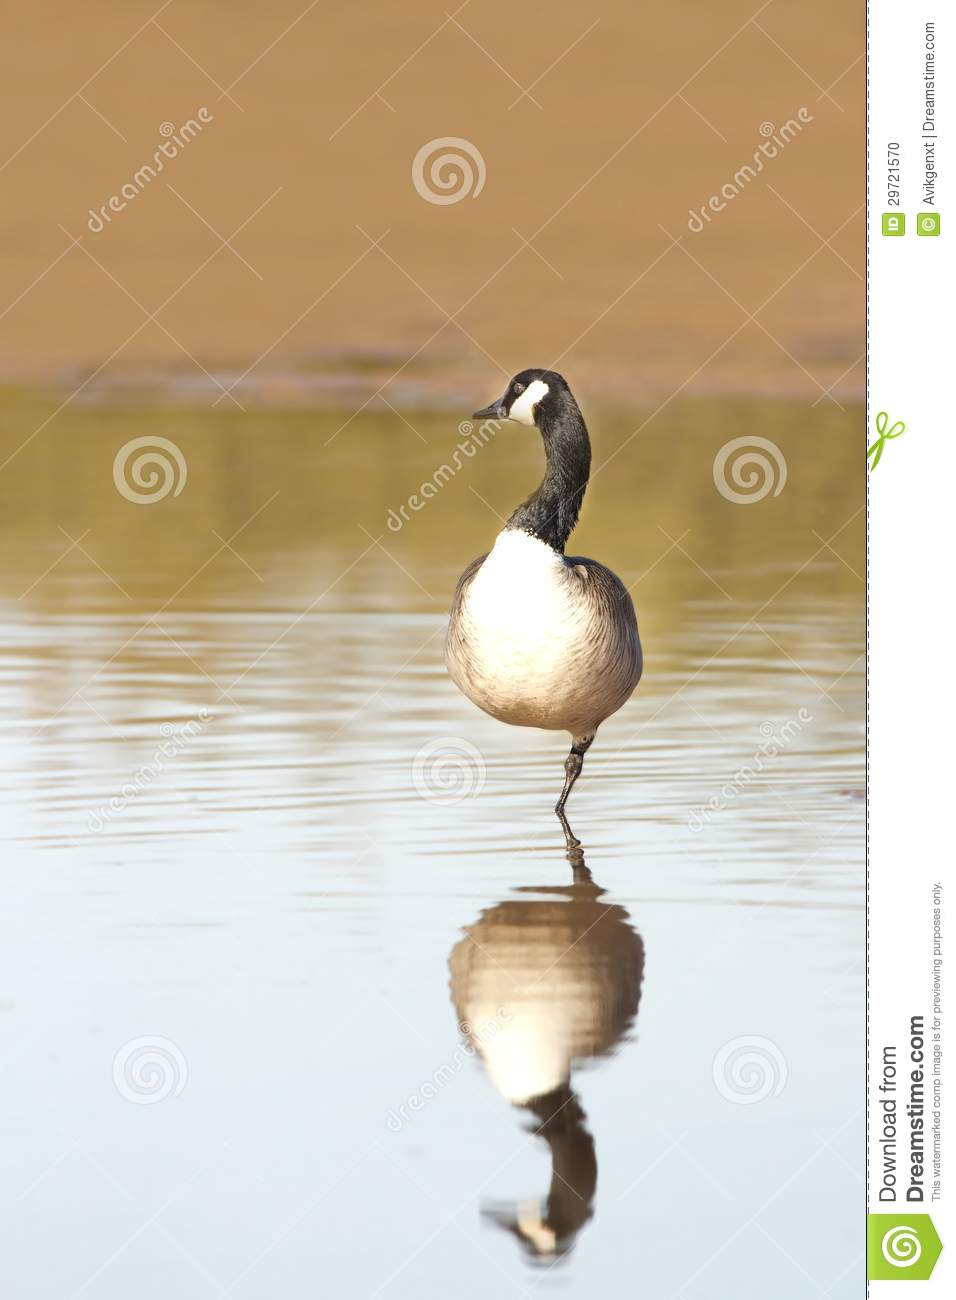 canada goose stock photo image 29721570